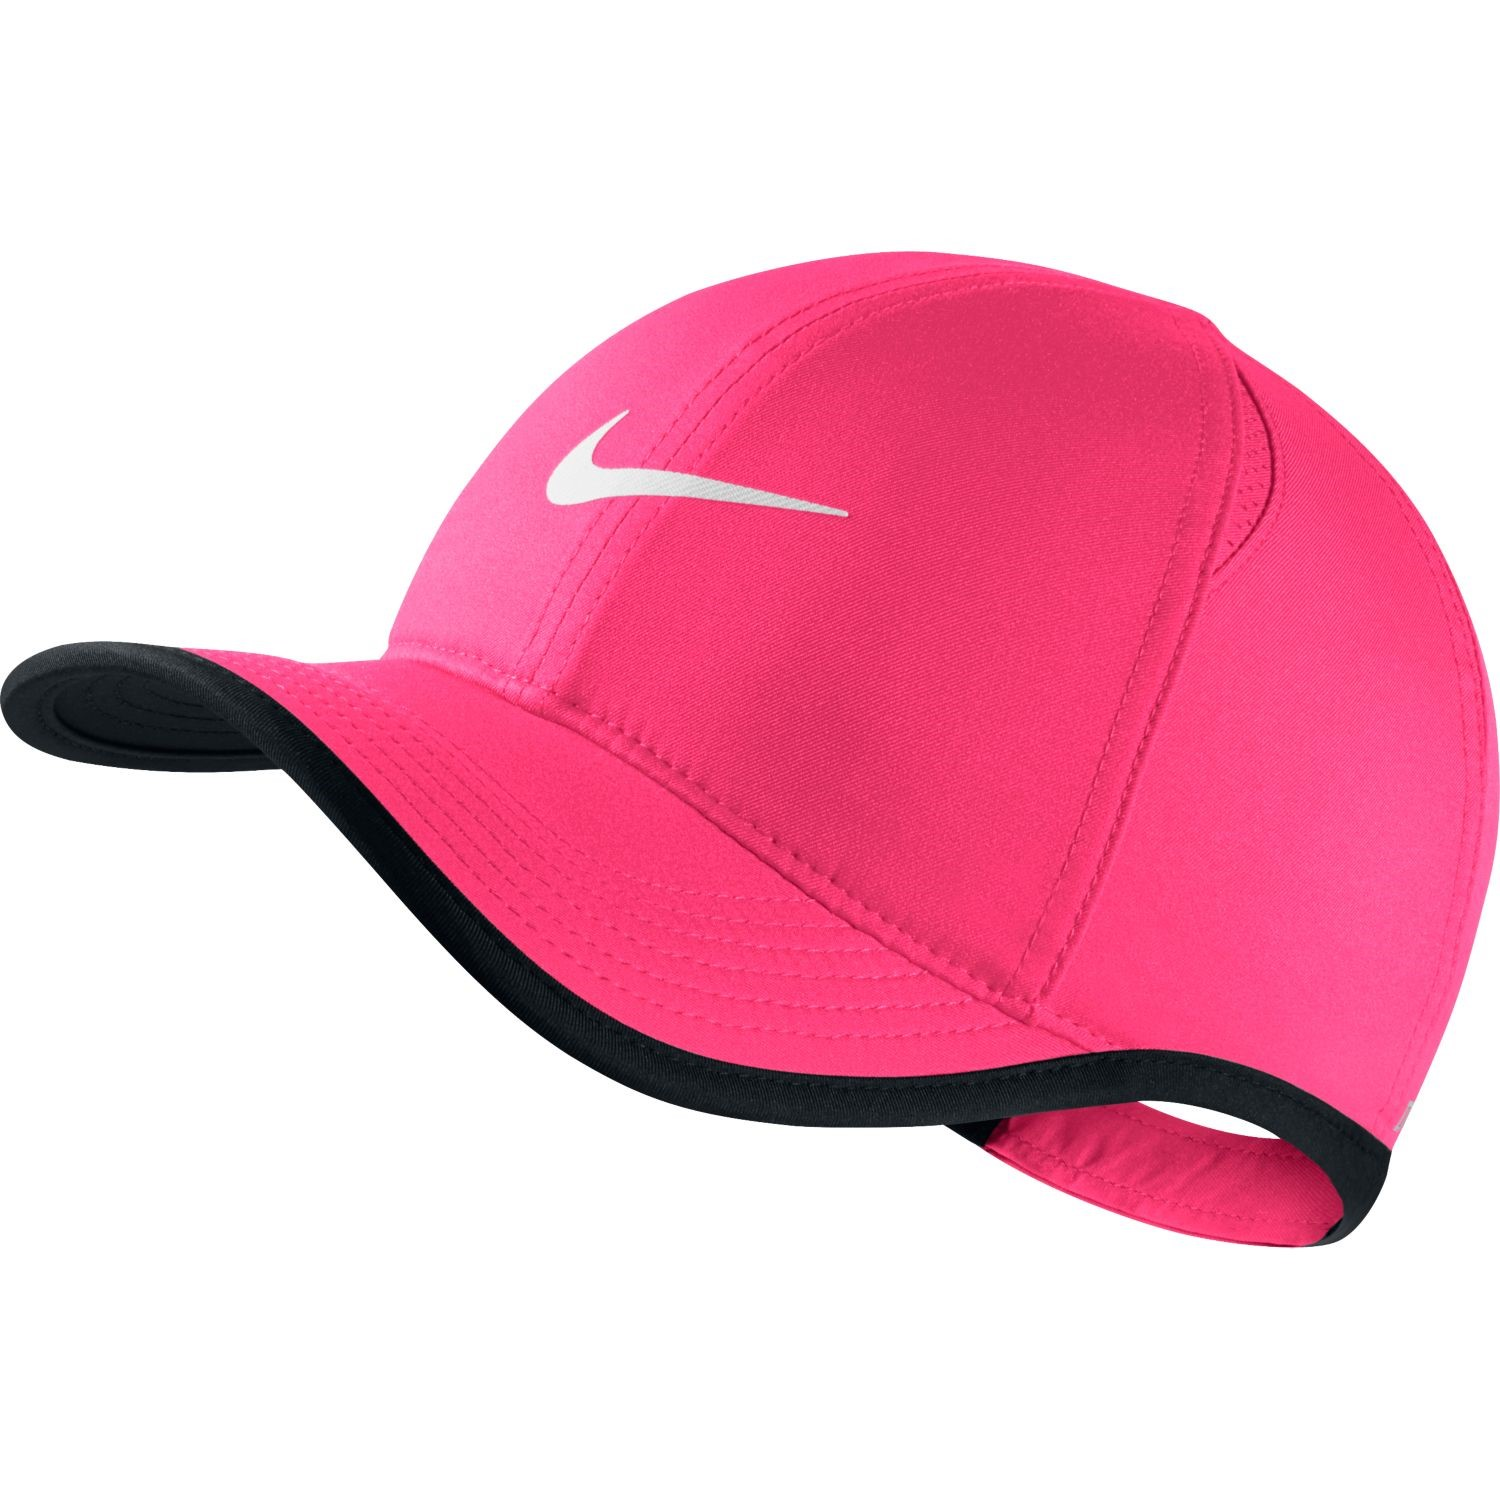 8bb8aed2032 Nike Aerobill Featherlight Kids Training Cap - Racer Pink Black White